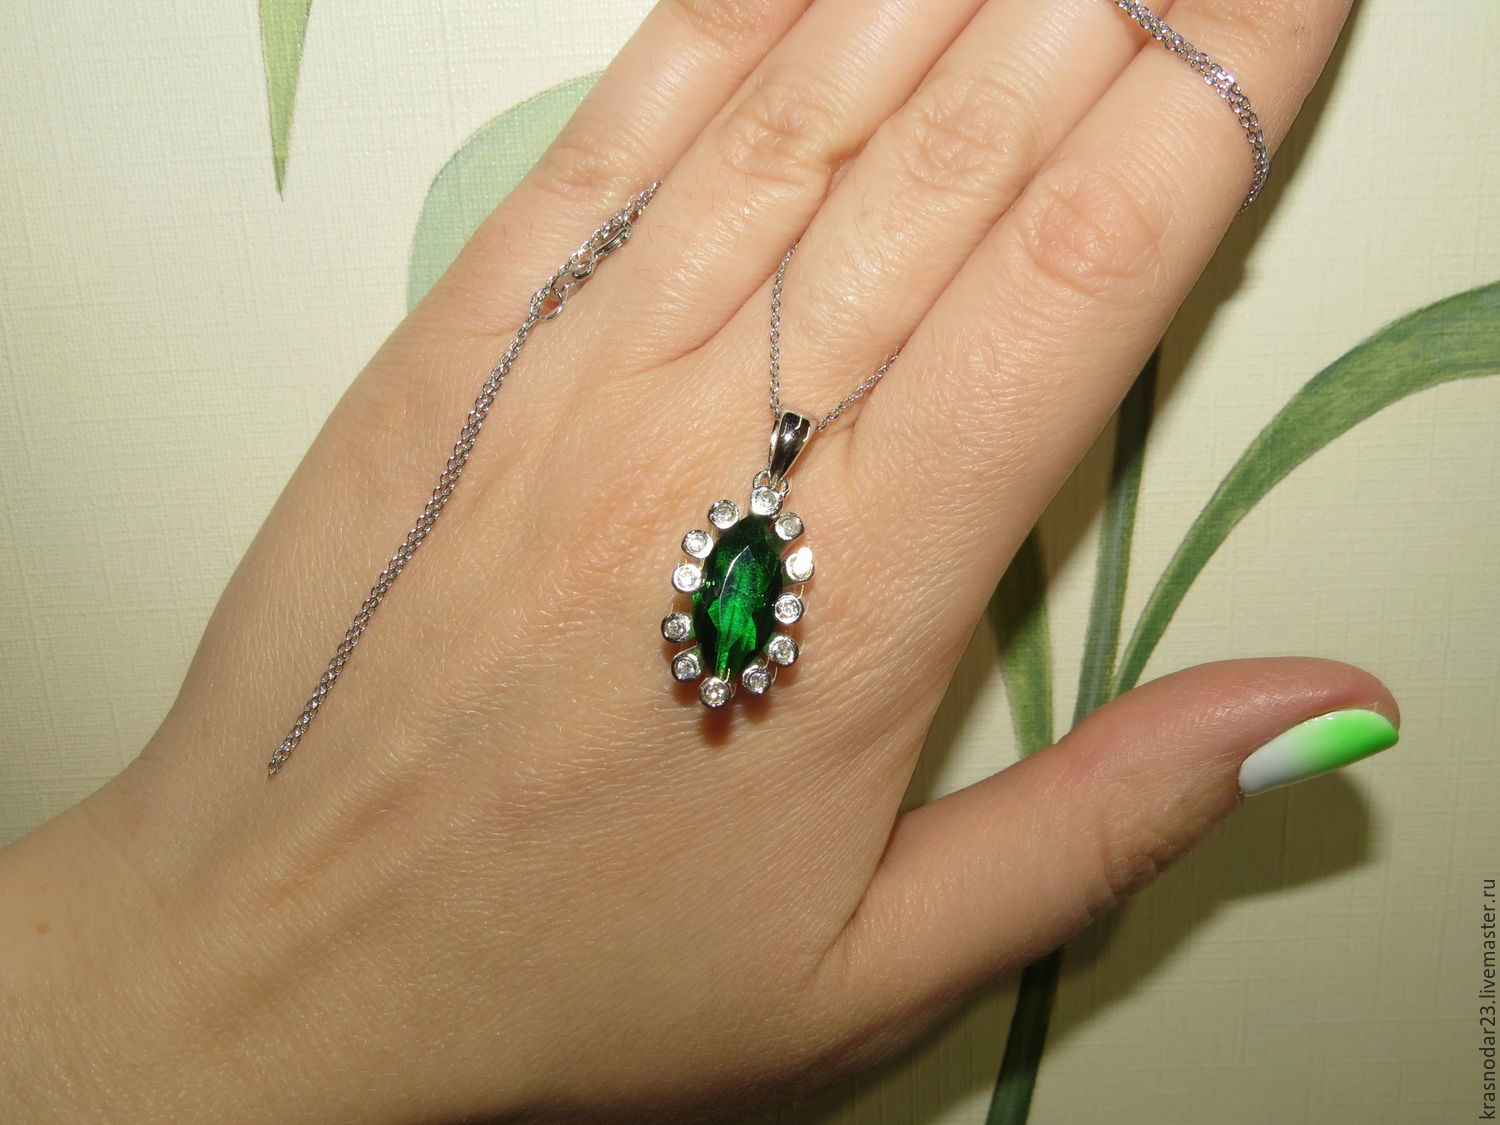 pendant on a chain made of 925 silver with emerald quartz framed by large zircons